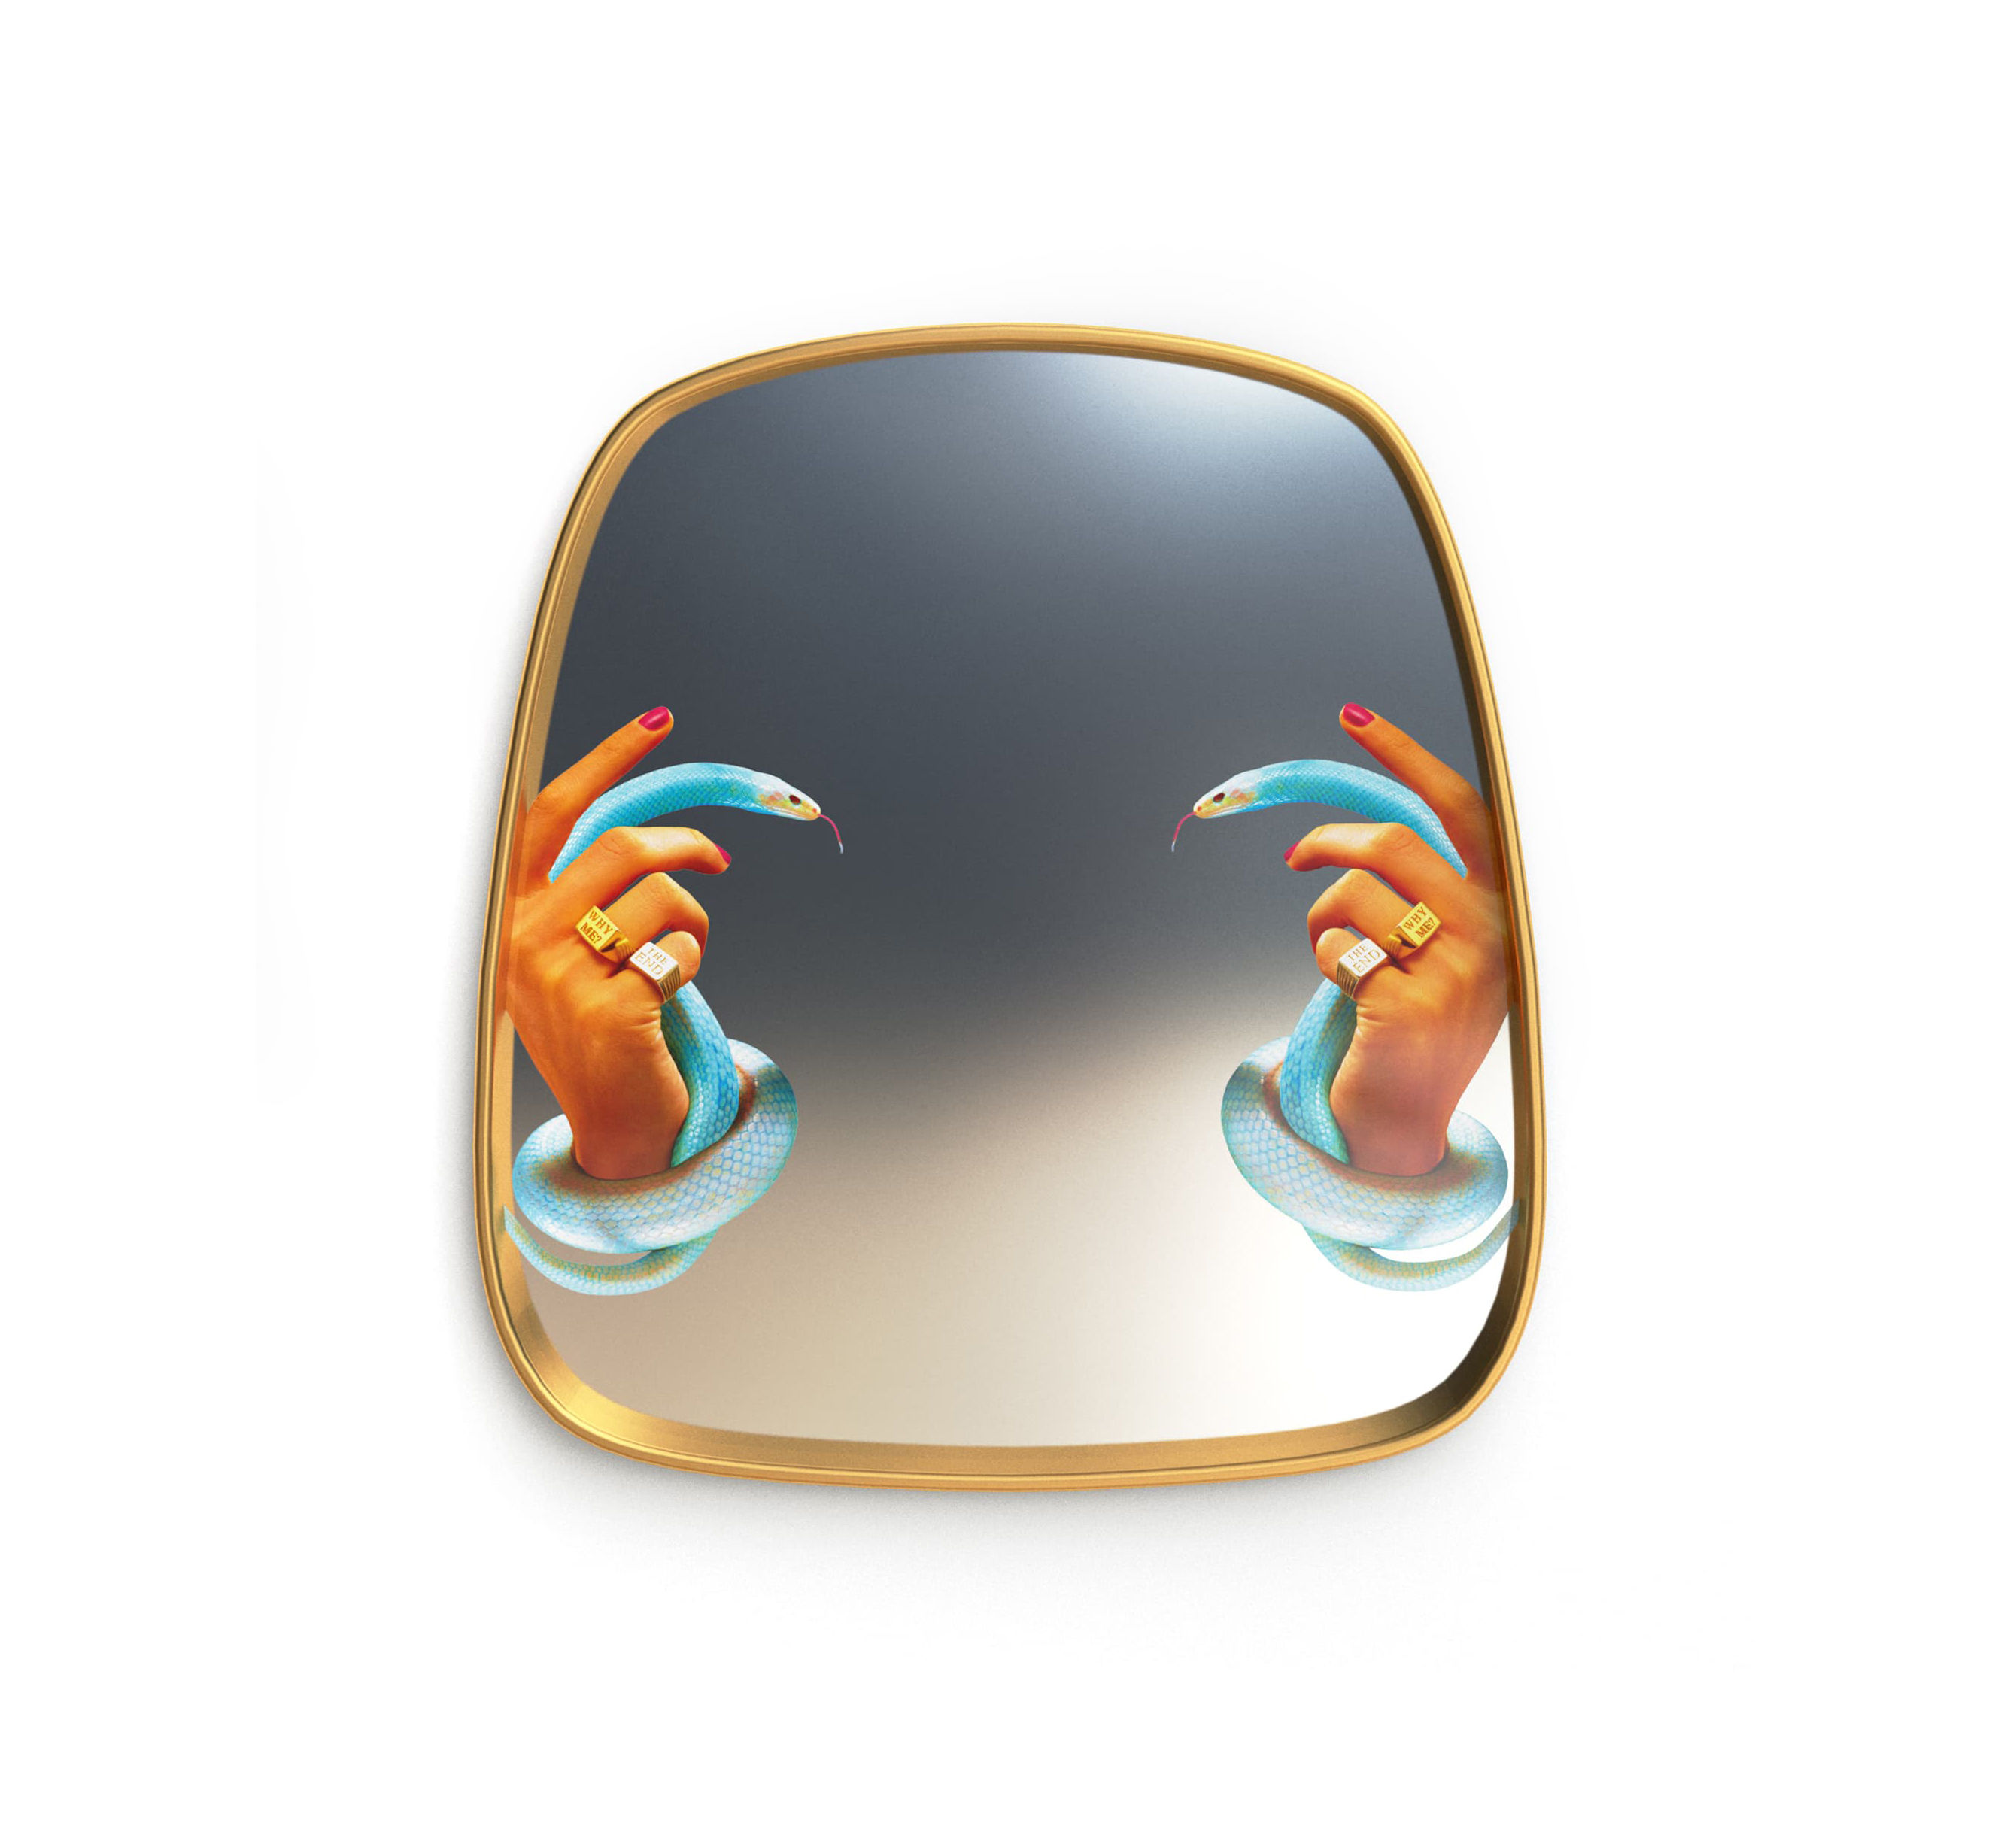 Decoration - Mirrors - Toiletpaper Mirror - / Hands & snakes - 54 x 59 cm by Seletti - Hands & snakes / Brass frame - Brass, Glass, MDF